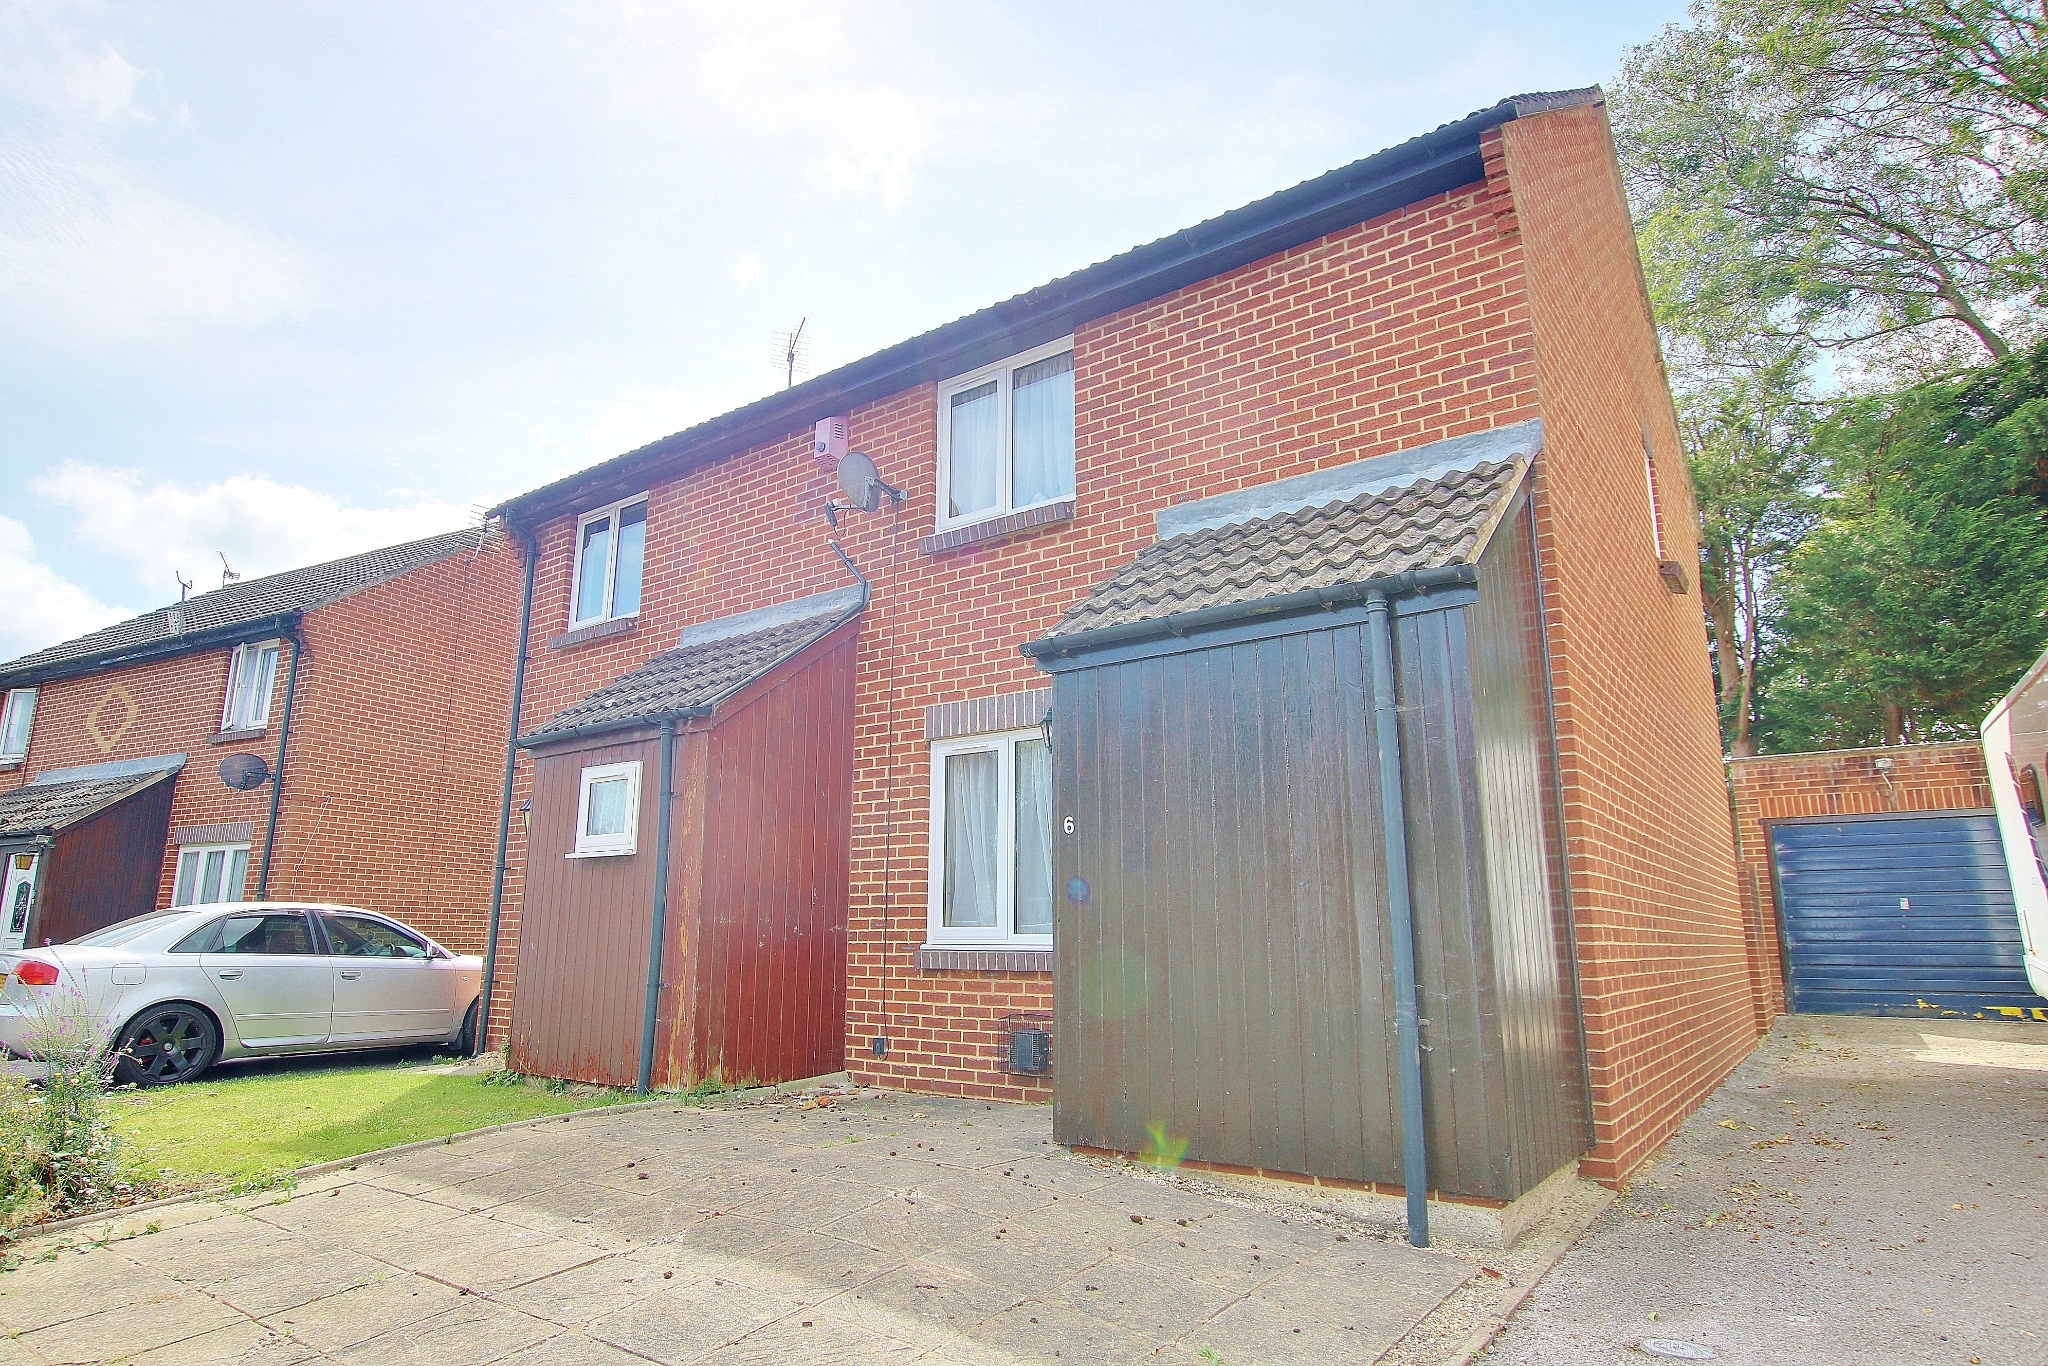 NO CHAIN! GARAGE! WEST END LOCATION! POTENTIAL!